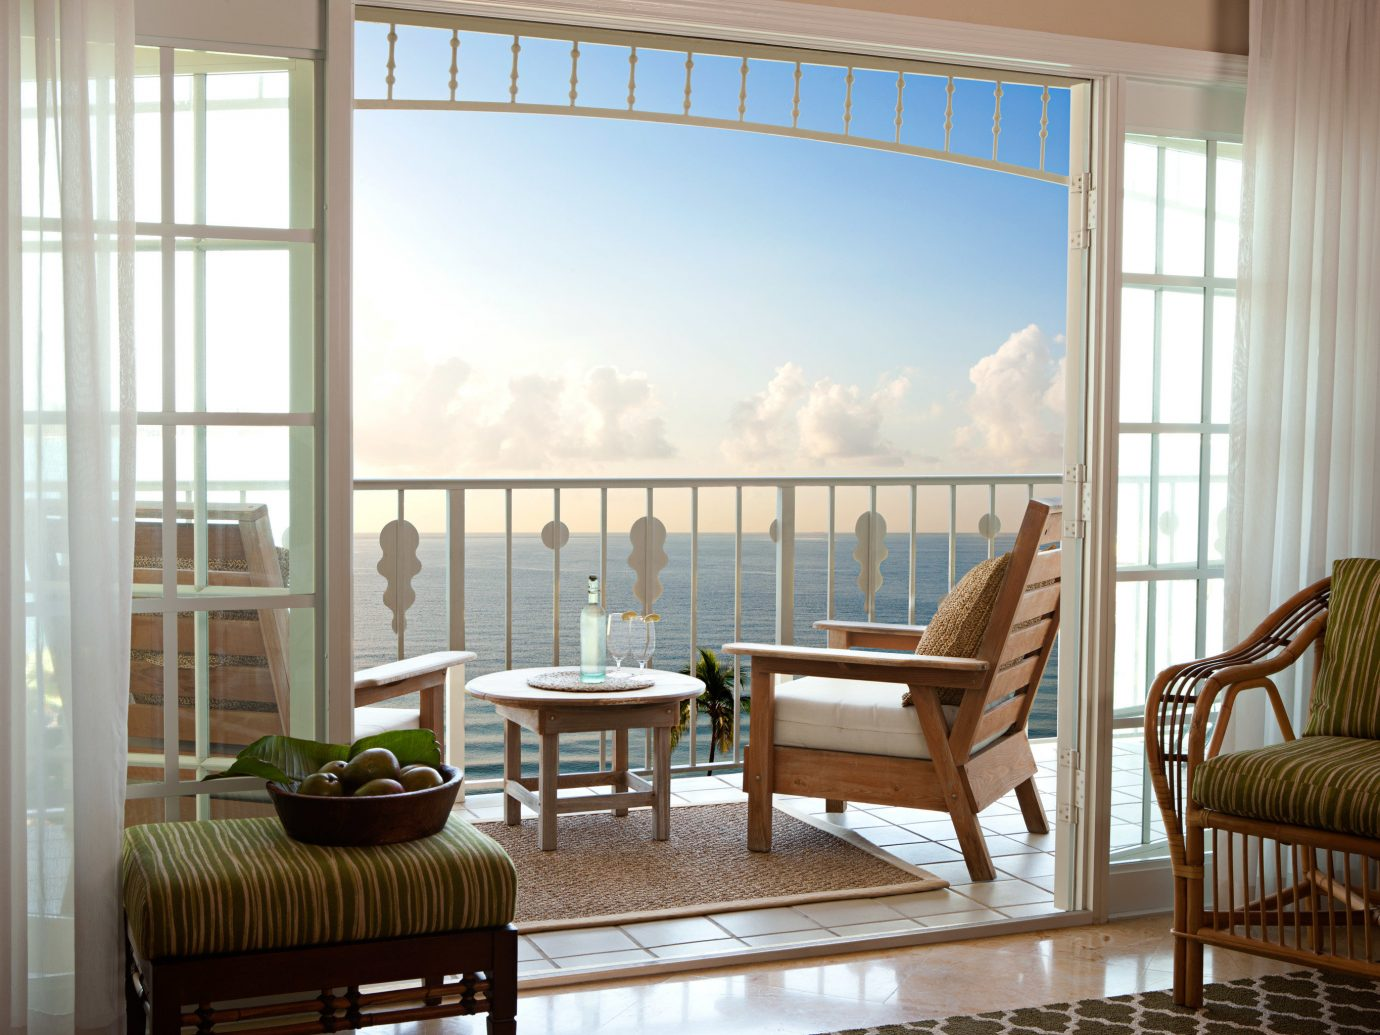 Balcony Modern Resort Trip Ideas Waterfront window floor indoor chair room Living property living room dining room building home interior design estate window covering hardwood porch real estate wood condominium cottage furniture farmhouse window treatment apartment dining table